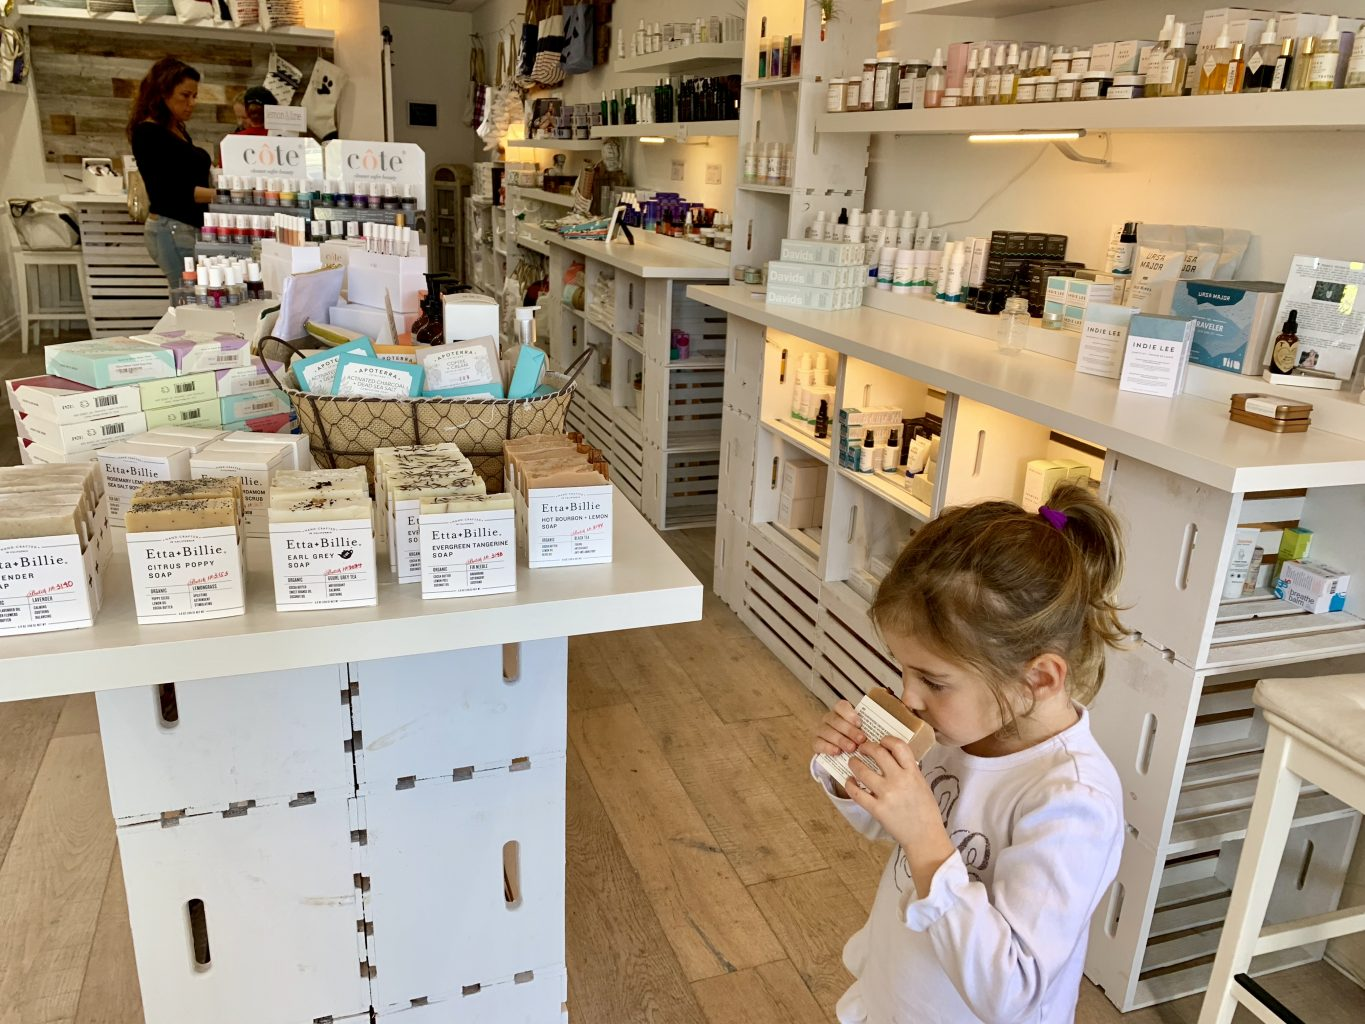 Fun things to do in La Jolla with kids: Shopping on Girard Ave.